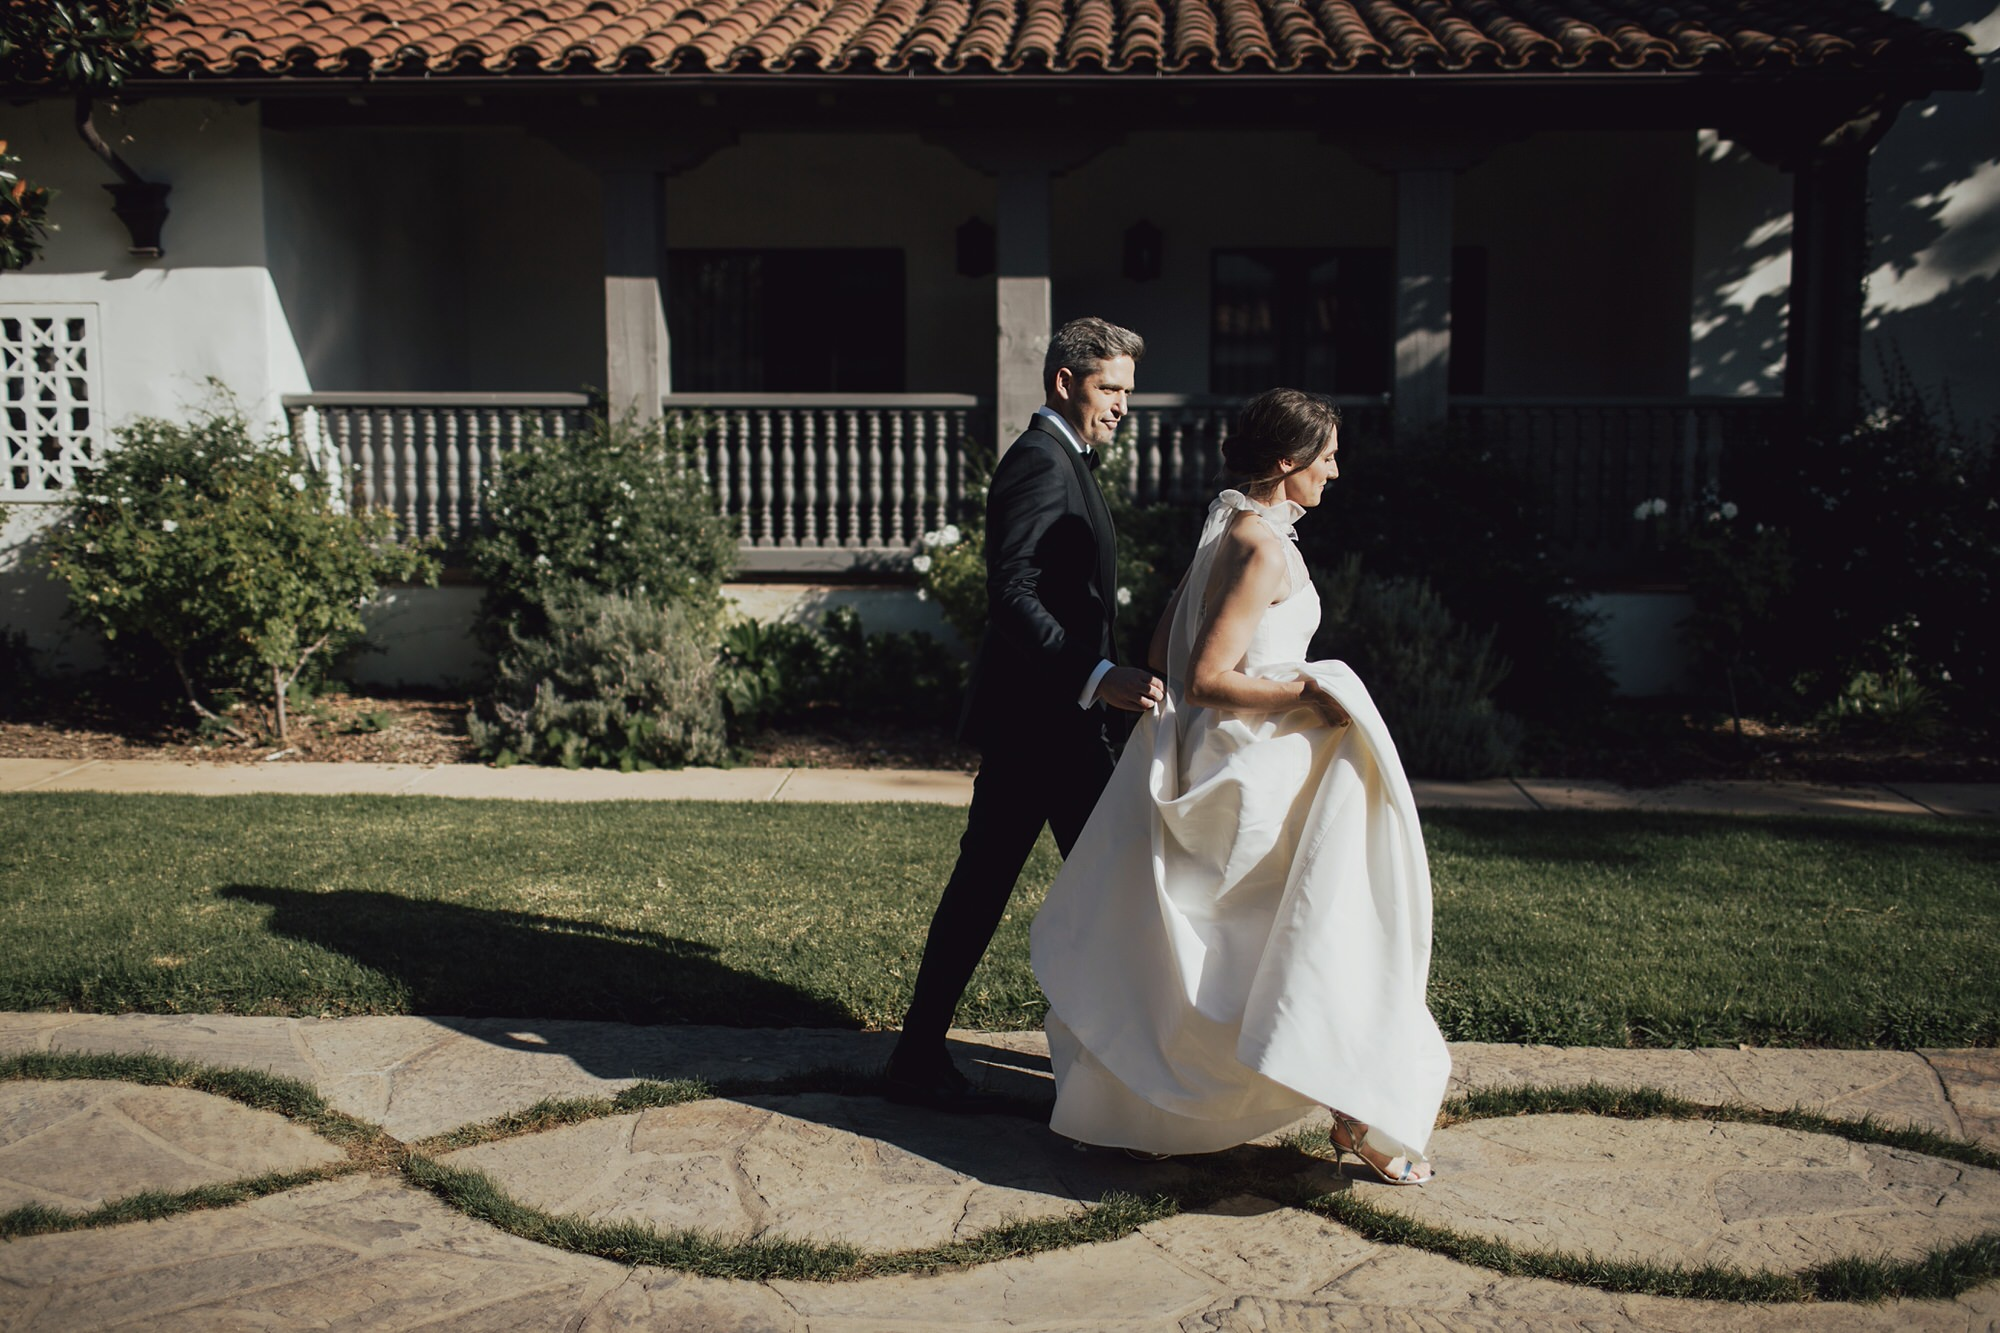 Iceland Wedding Photographer in Ojai, Ca